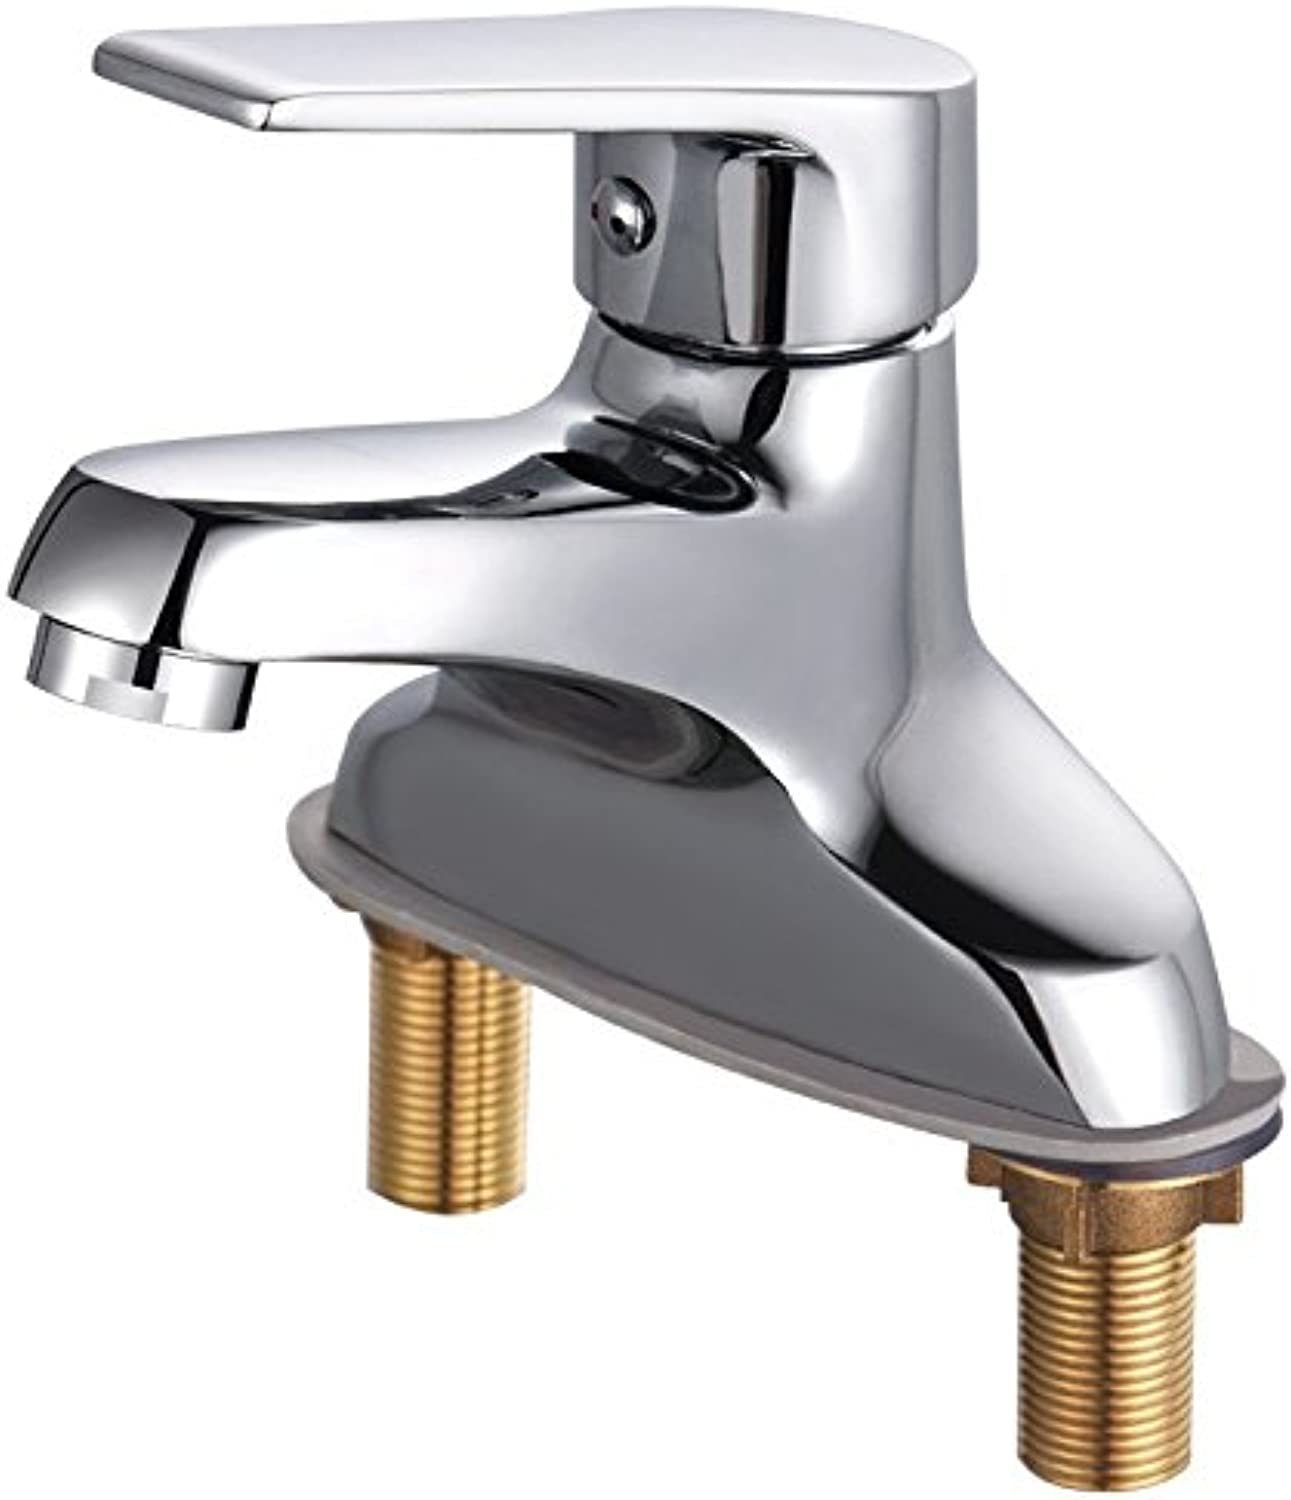 Decorry Basin, Faucet, Hot and Cold Basin, Faucet, Double Hole Basin, Cold and Hot Water Faucet Ceramic Disc Spool,B